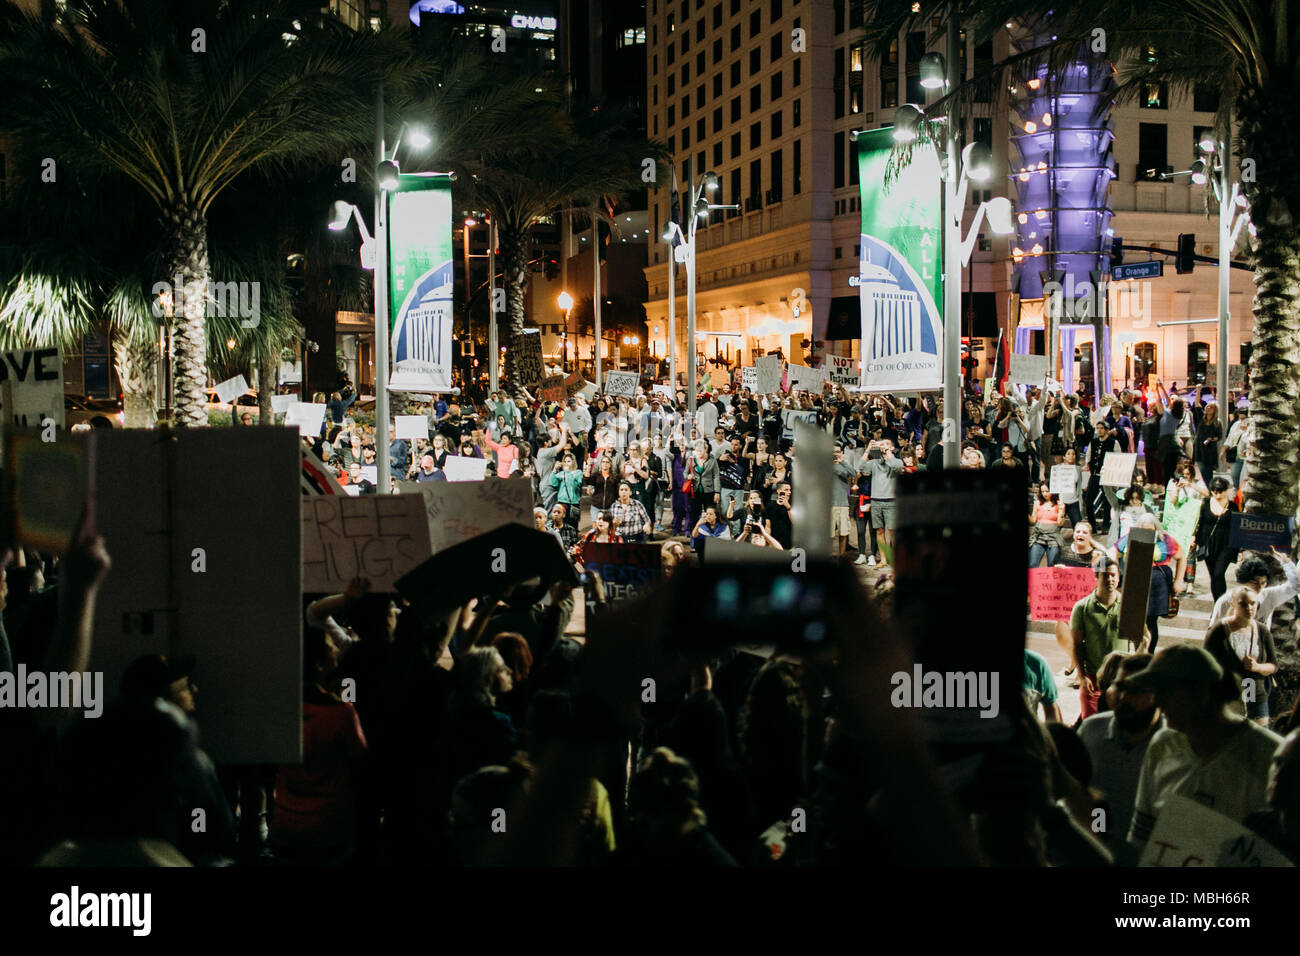 Anti-Trump Peaceful Protest in Downtown Orlando (2016). - Stock Image